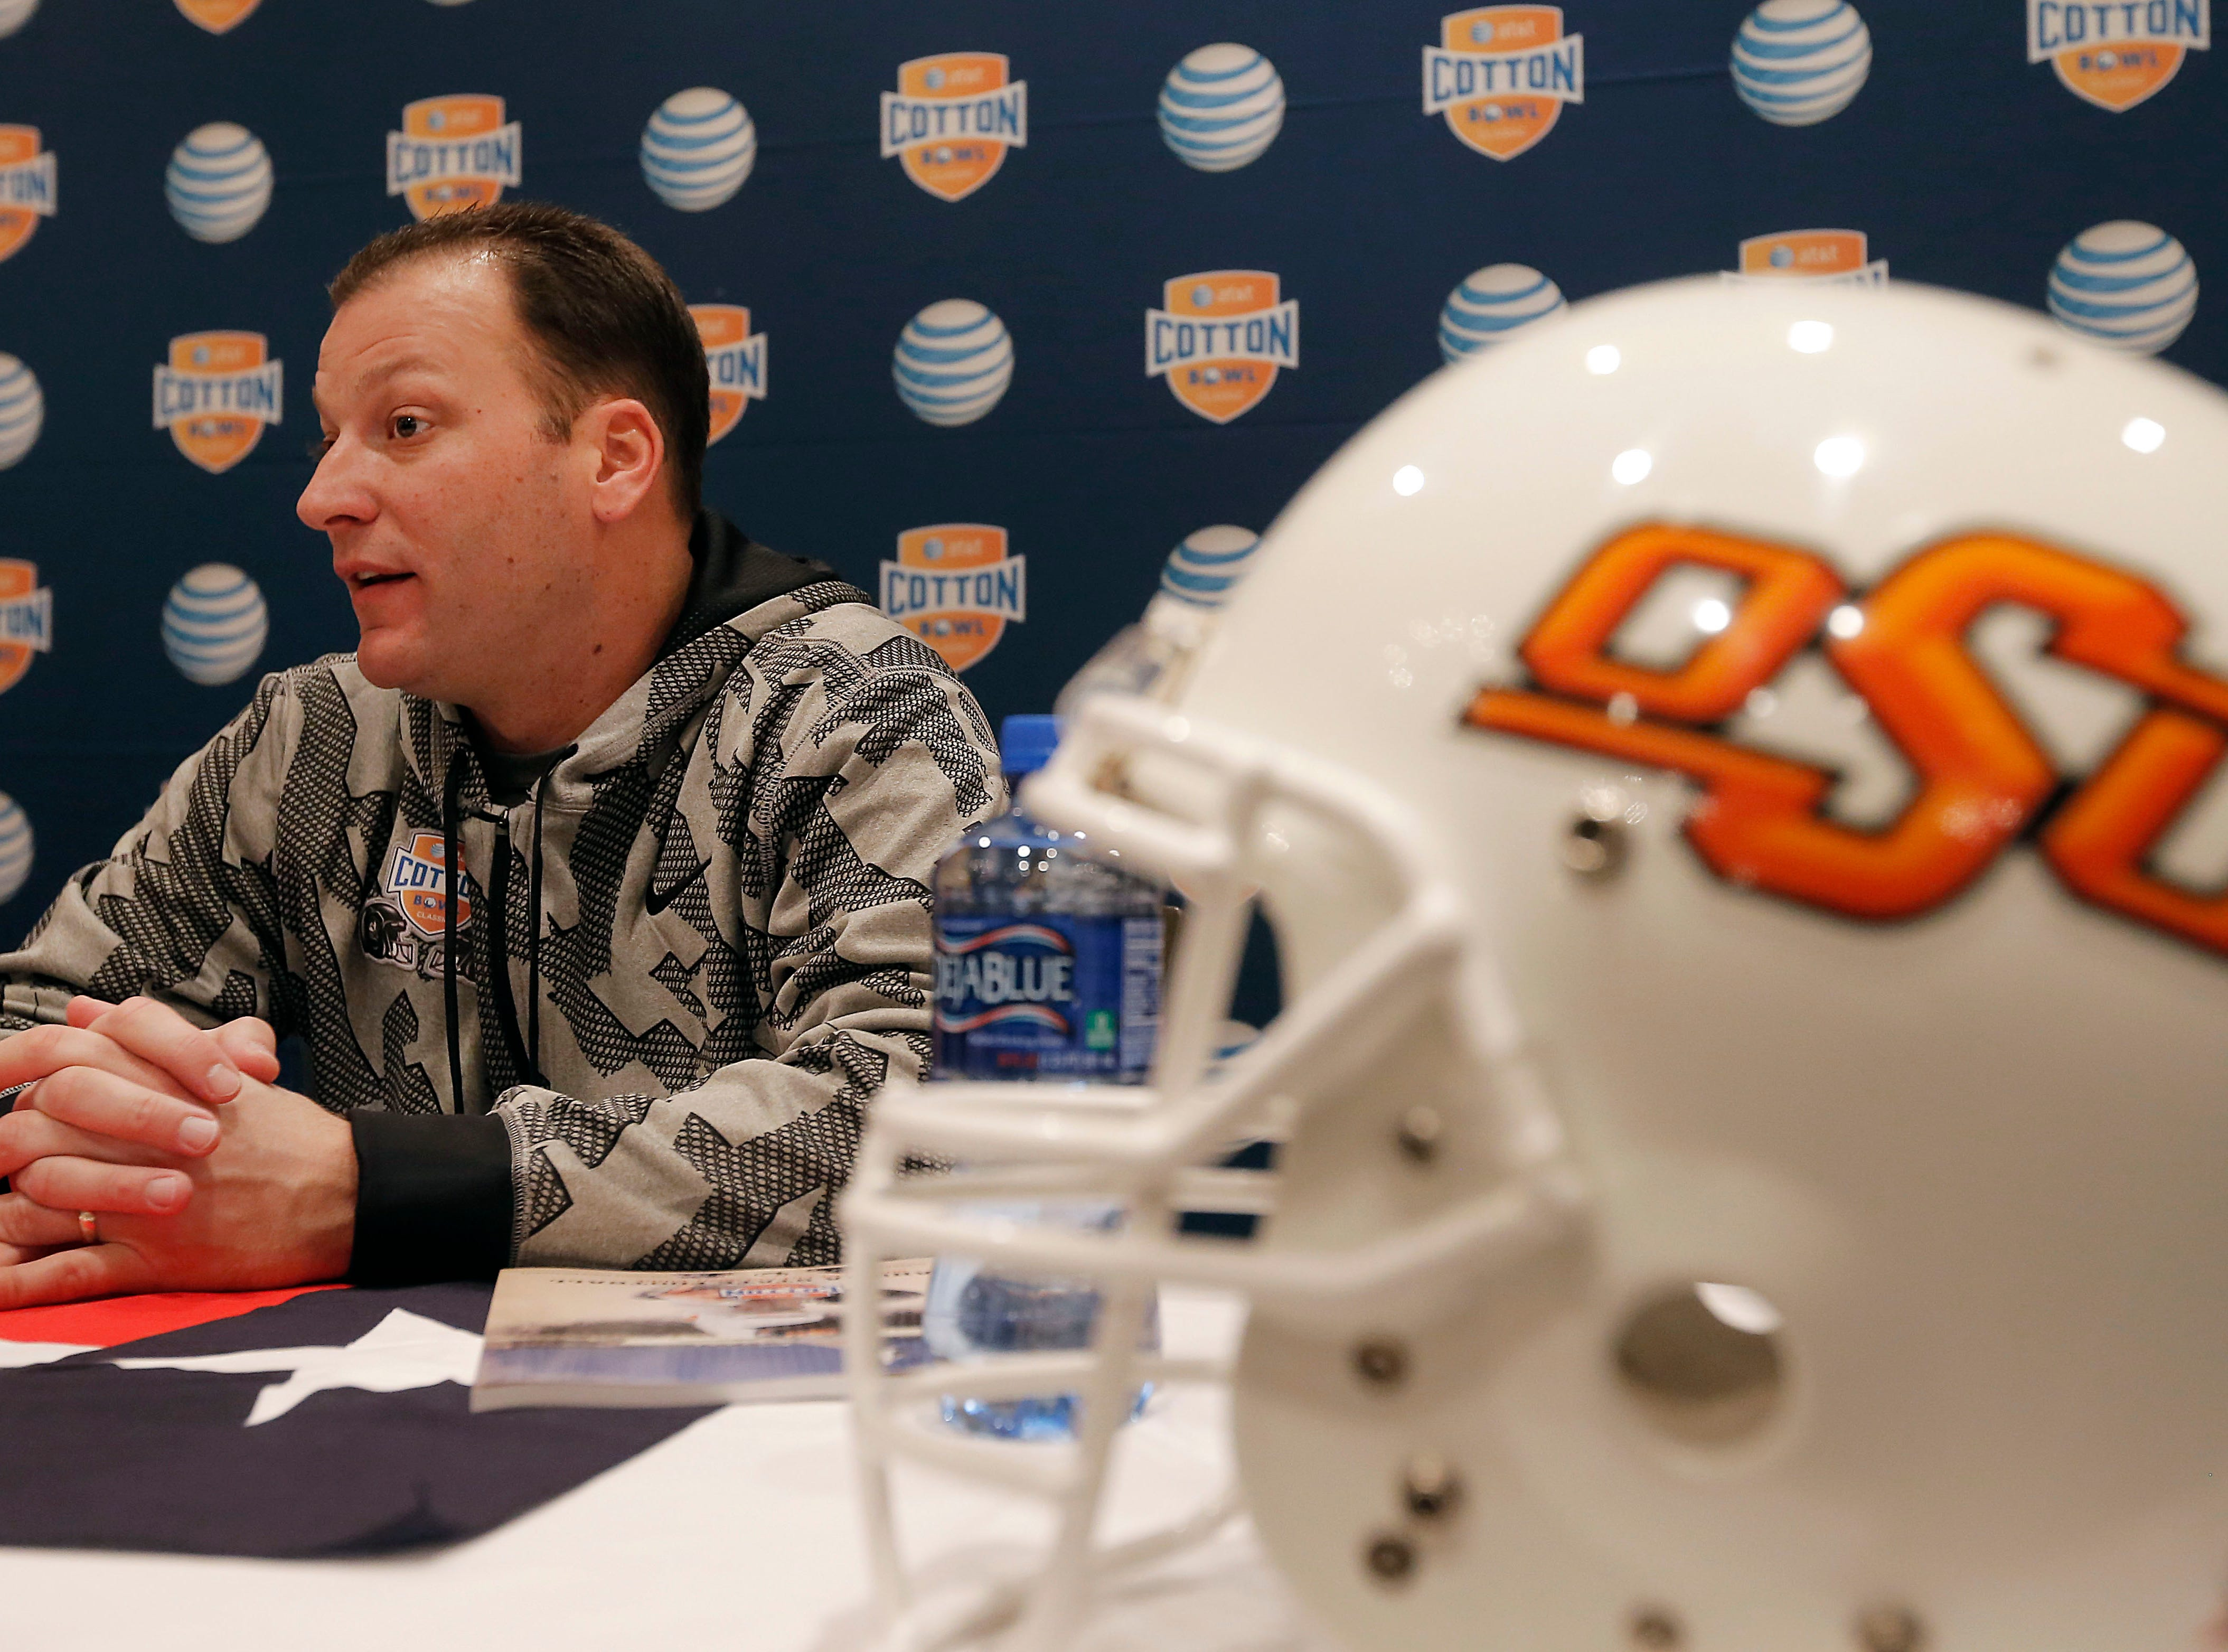 Oklahoma State Offensive Coordinator Mike Yurcich speaks to the media during an NCAA college football press conference, Wednesday, Jan. 1, 2014, in Irving, Texas. Oklahoma State takes on Missouri in the Cotton Bowl on Friday in Arlington, Texas.